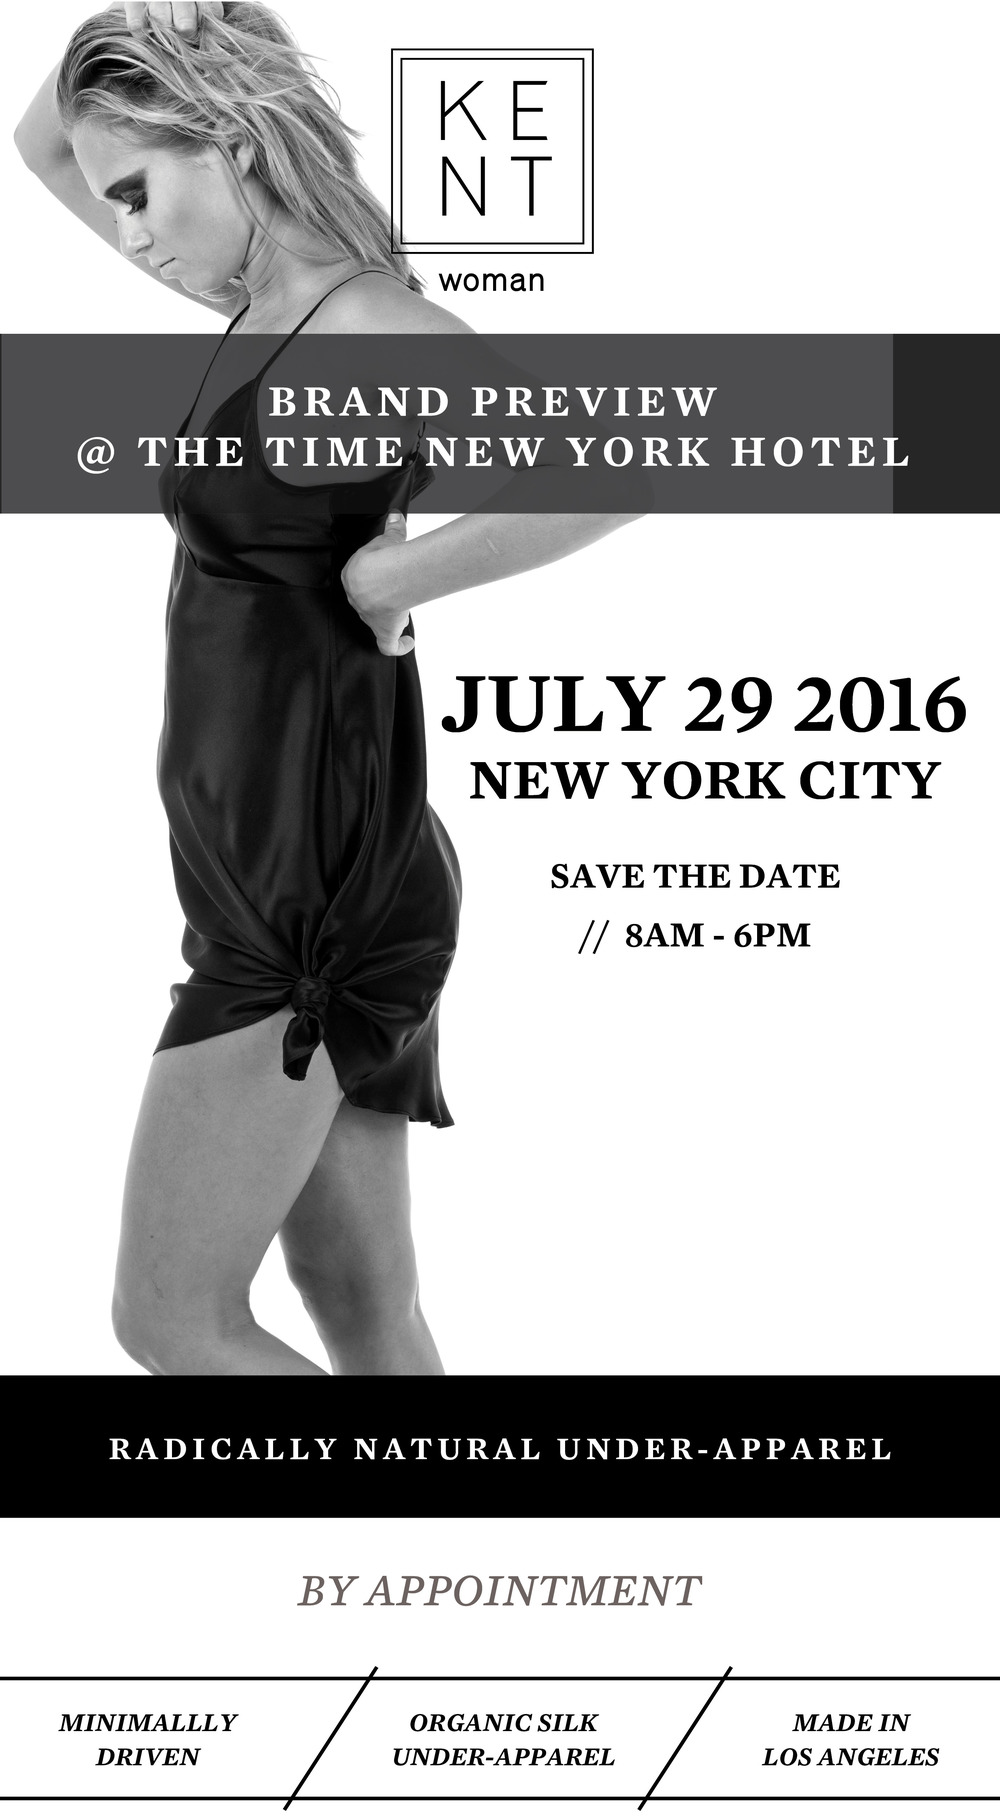 KENT NYC Brand Preview 07292016 w hotel.jpg